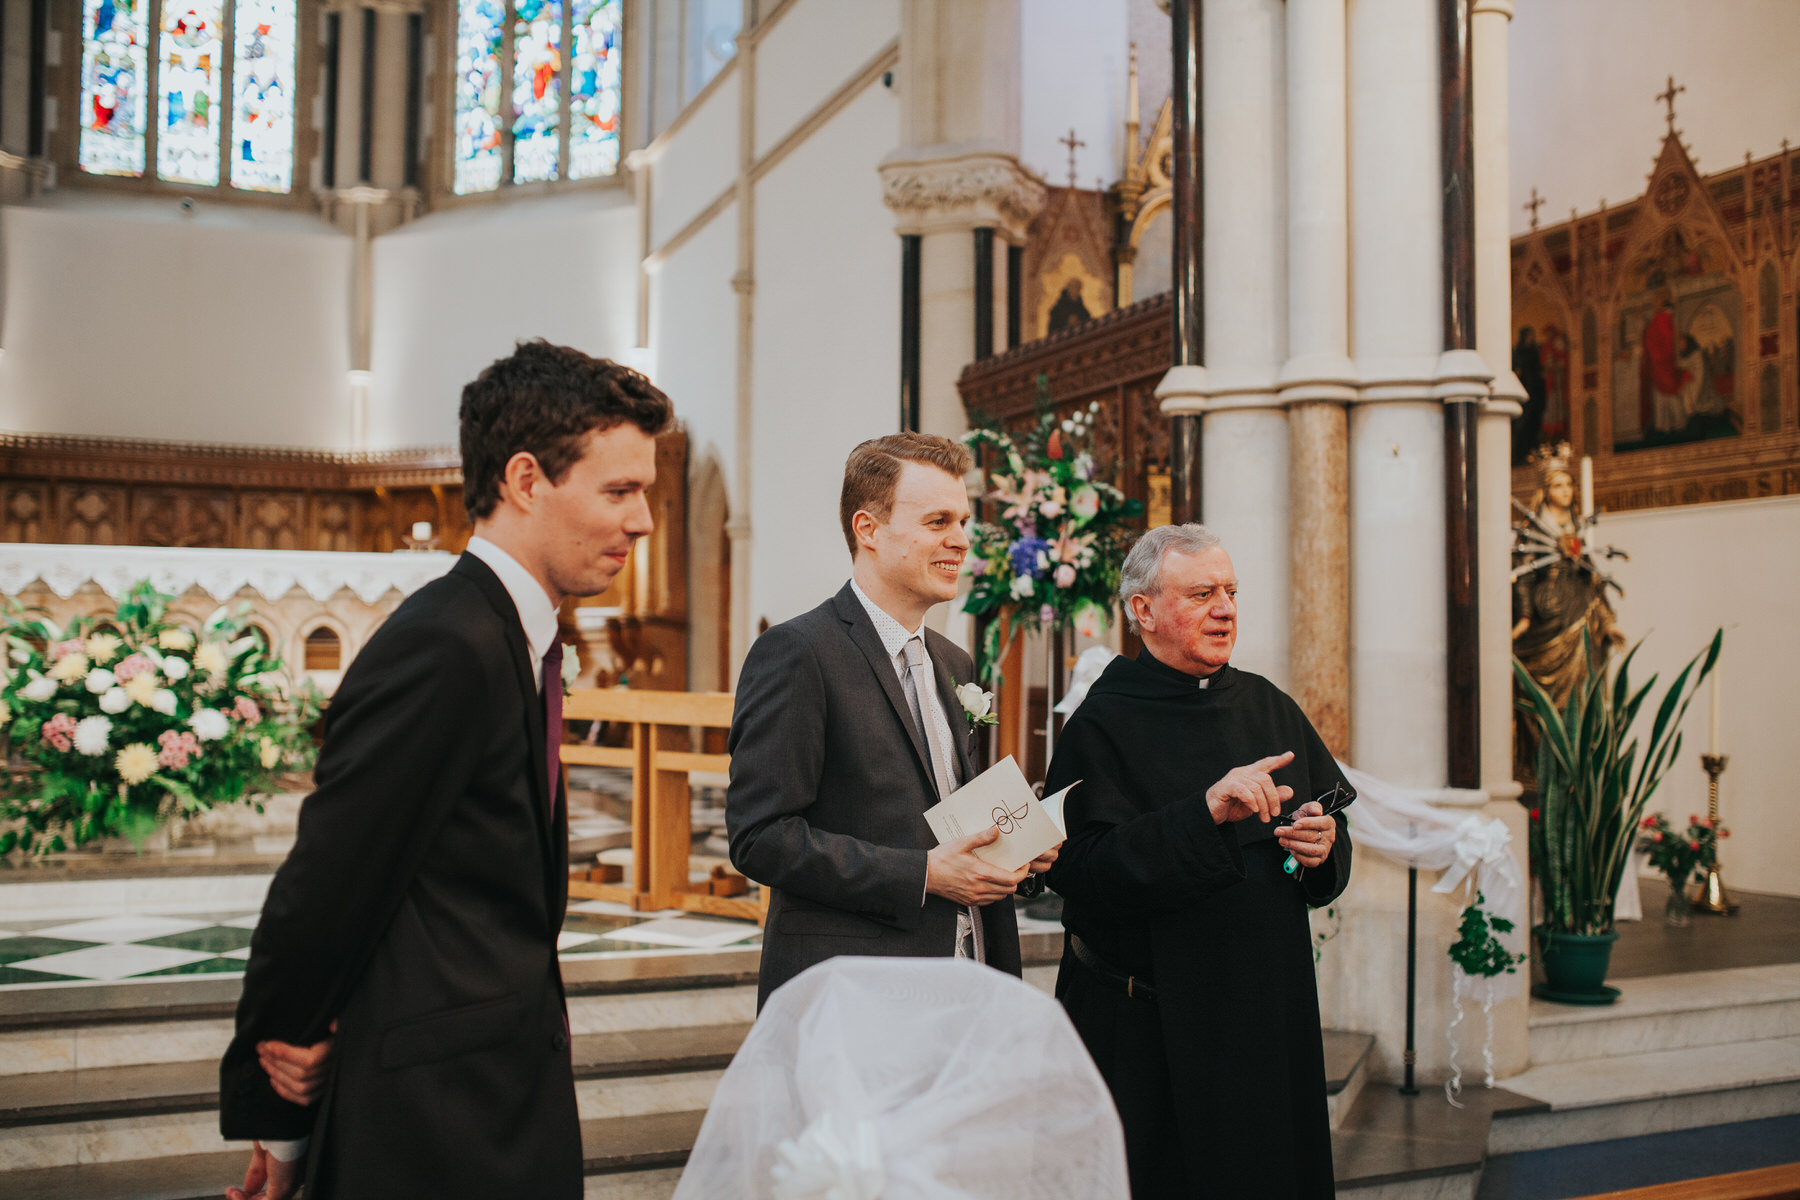 7 groom bestman waiting father Fulham Catholic Church wedding.jpg